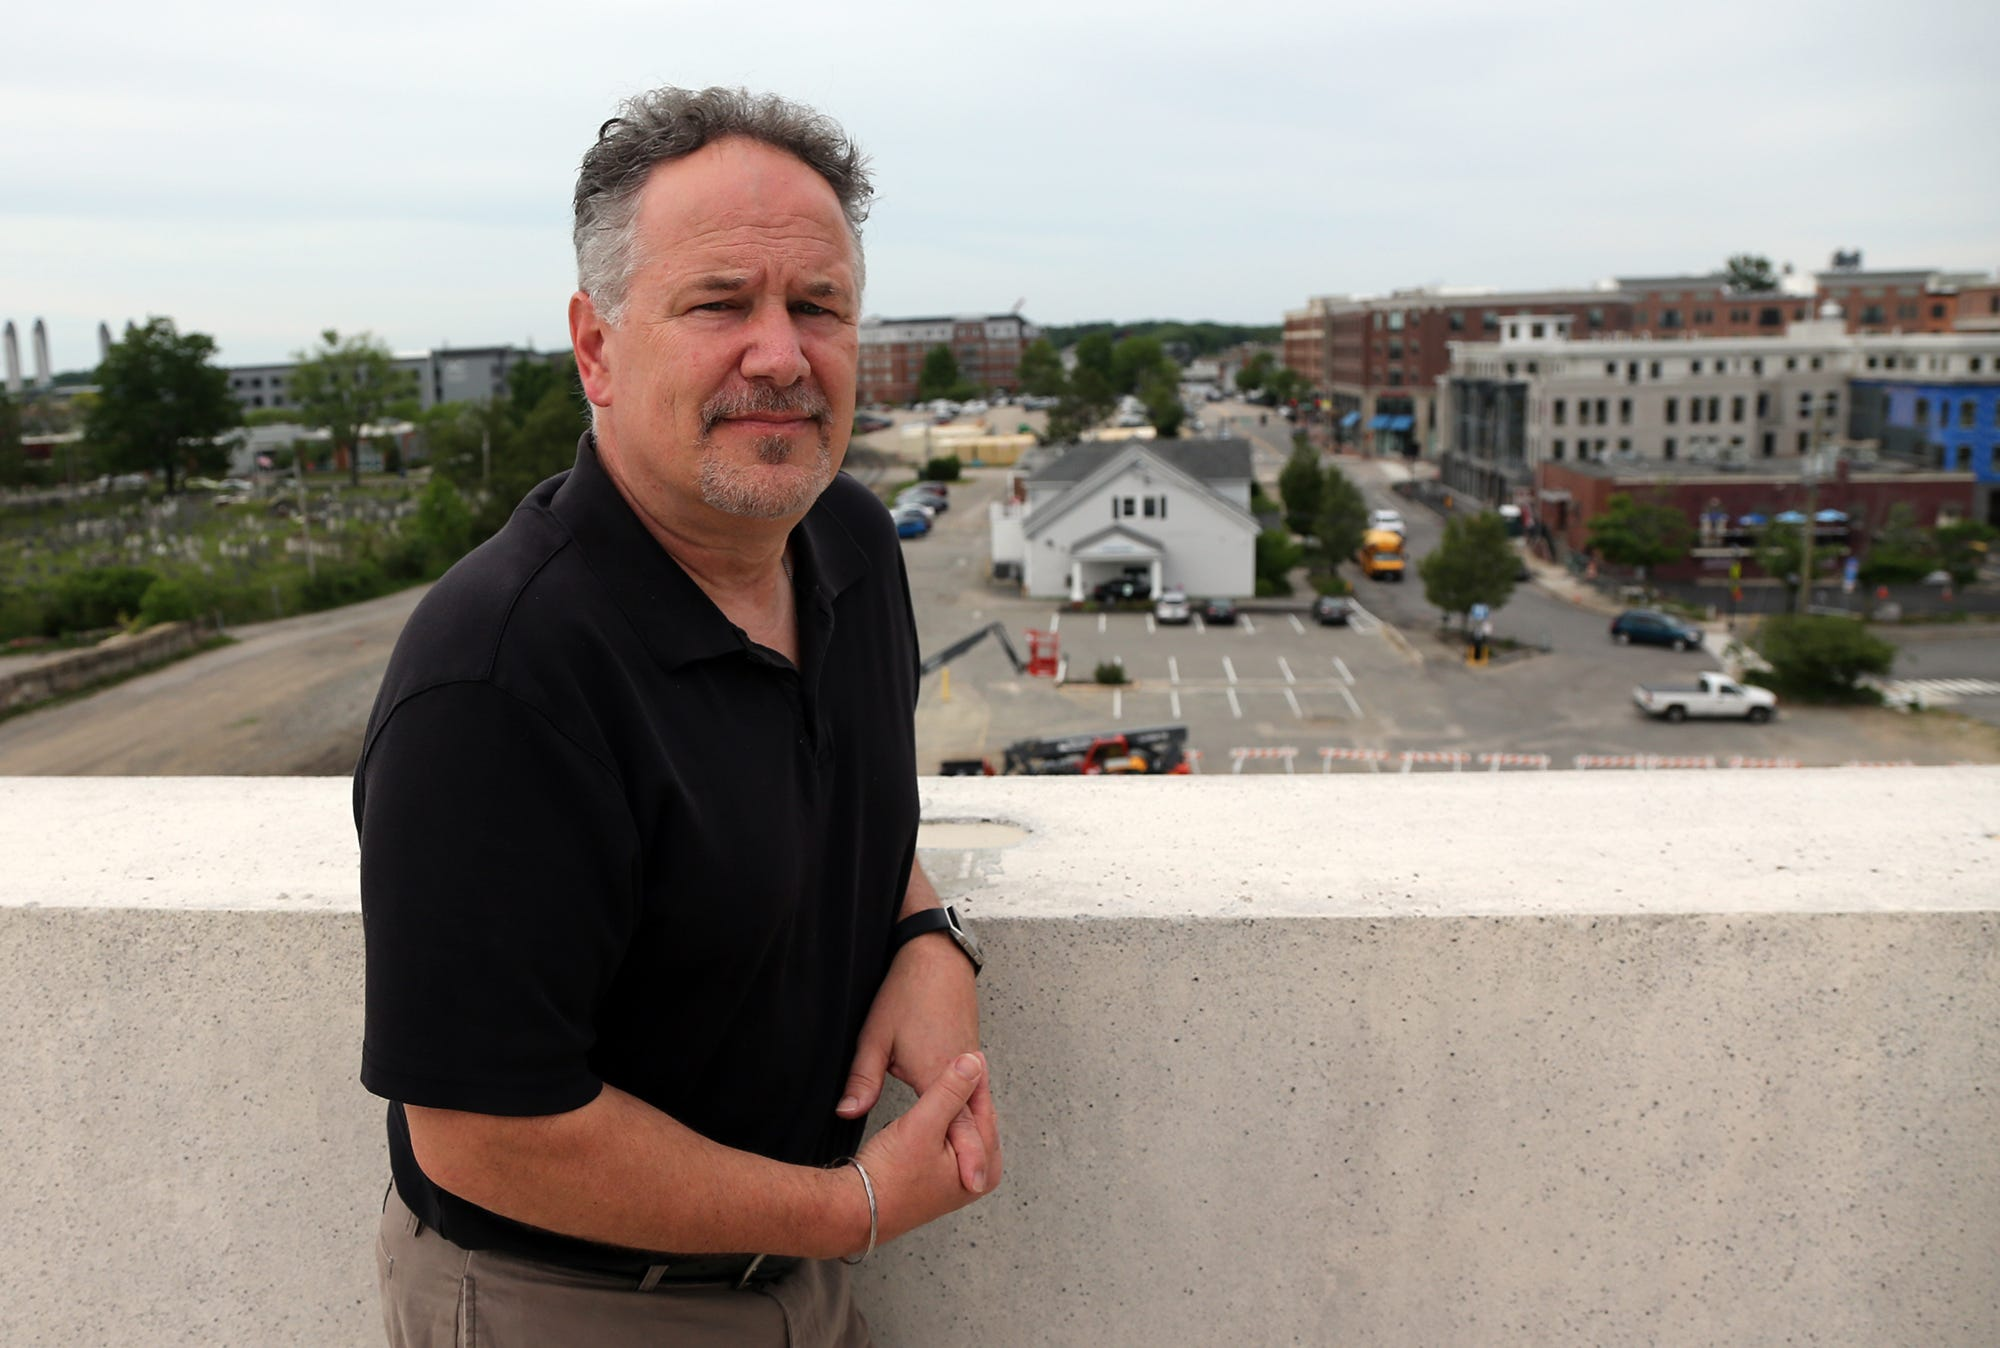 HDC member Martin Ryan says the bigger projects proposed for the North End fit well into this part of the Portsmouth.